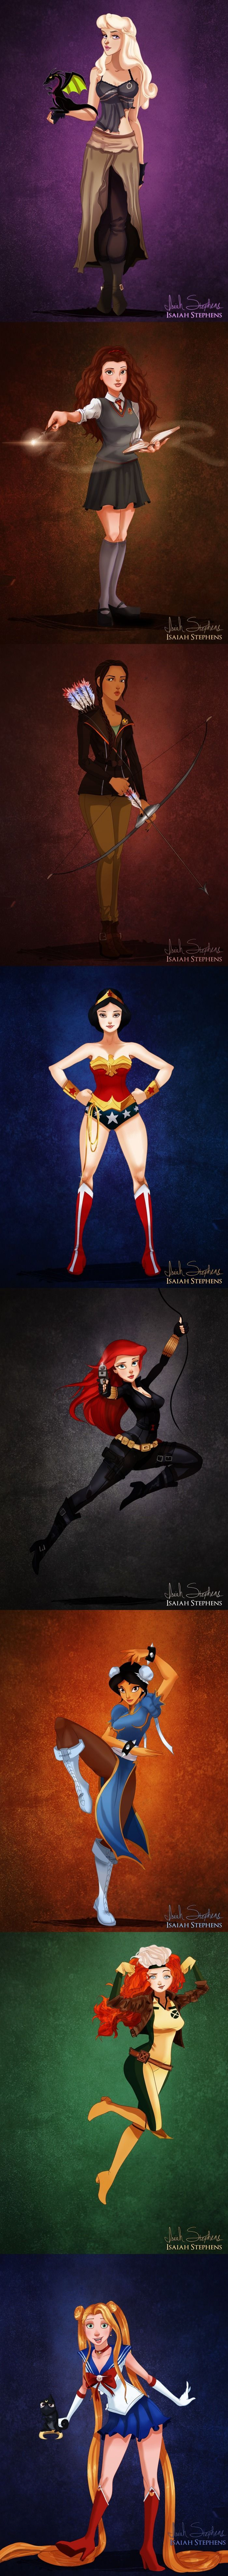 Disney Princesses Dressed Up in Pop Culture Halloween Costumes -